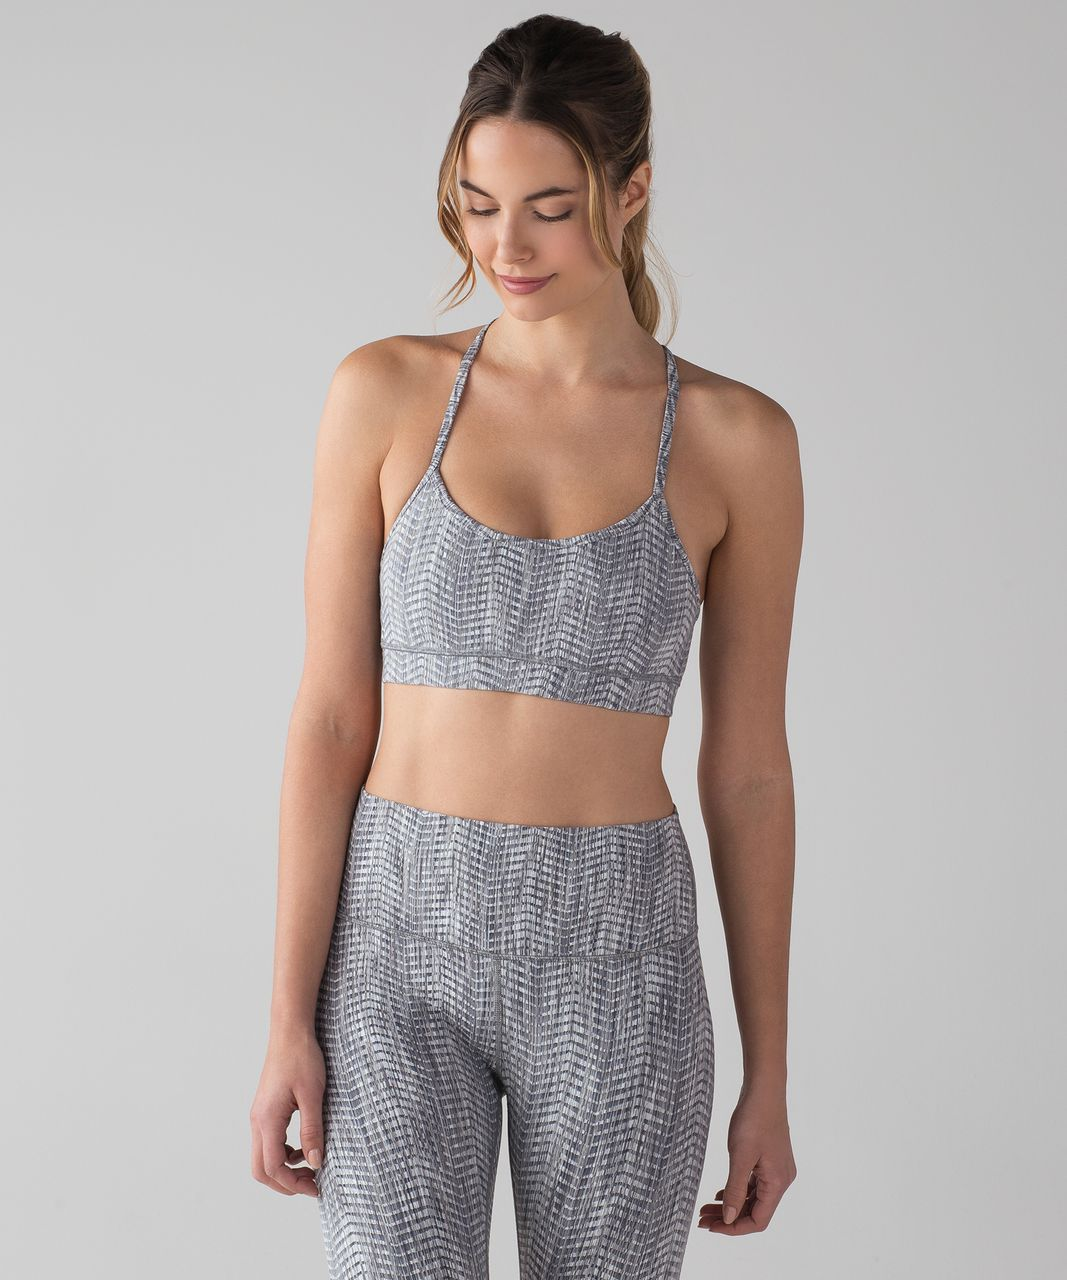 Lululemon Flow Y Bra IV - Luon Arrow Jacquard Battleship Silver Spoon / Battleship